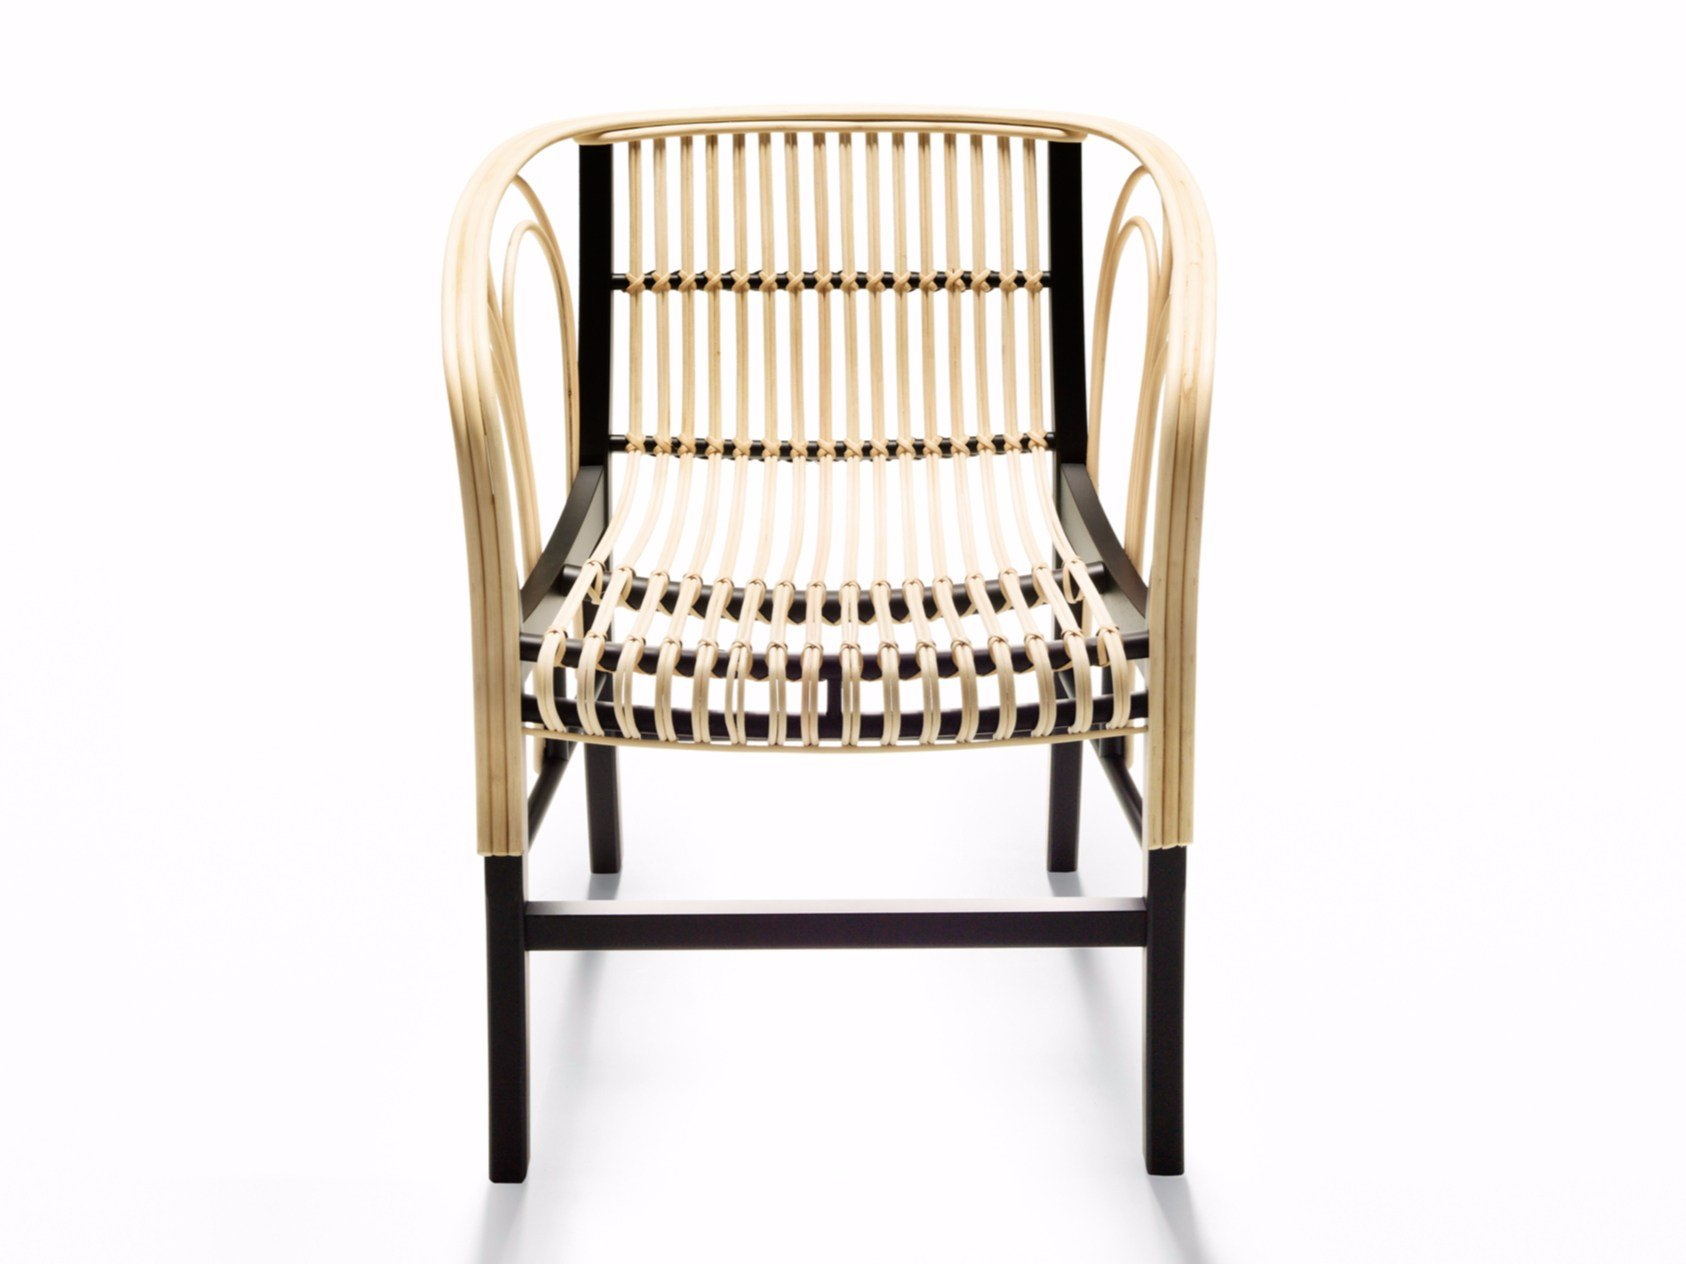 Woven wicker chair with armrests CYBORG CLUB Cyborg Collection By